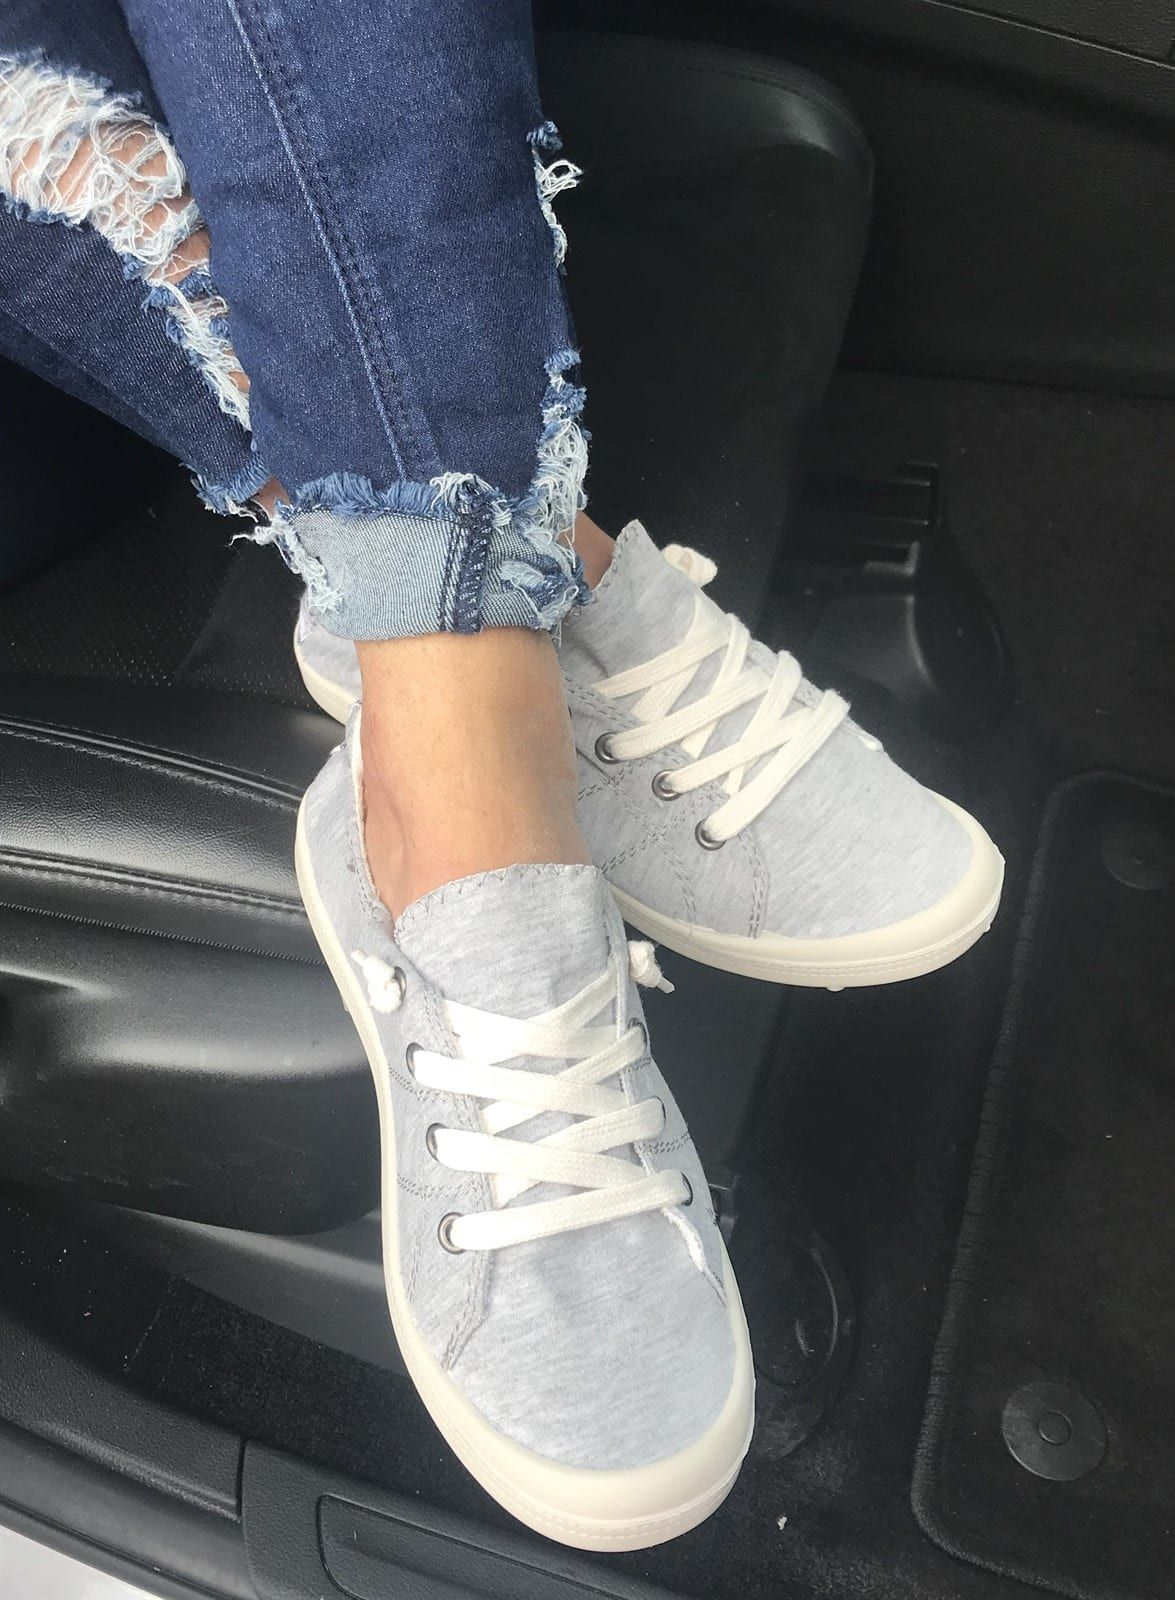 Luxe Tennis Shoes | Stylish tennis